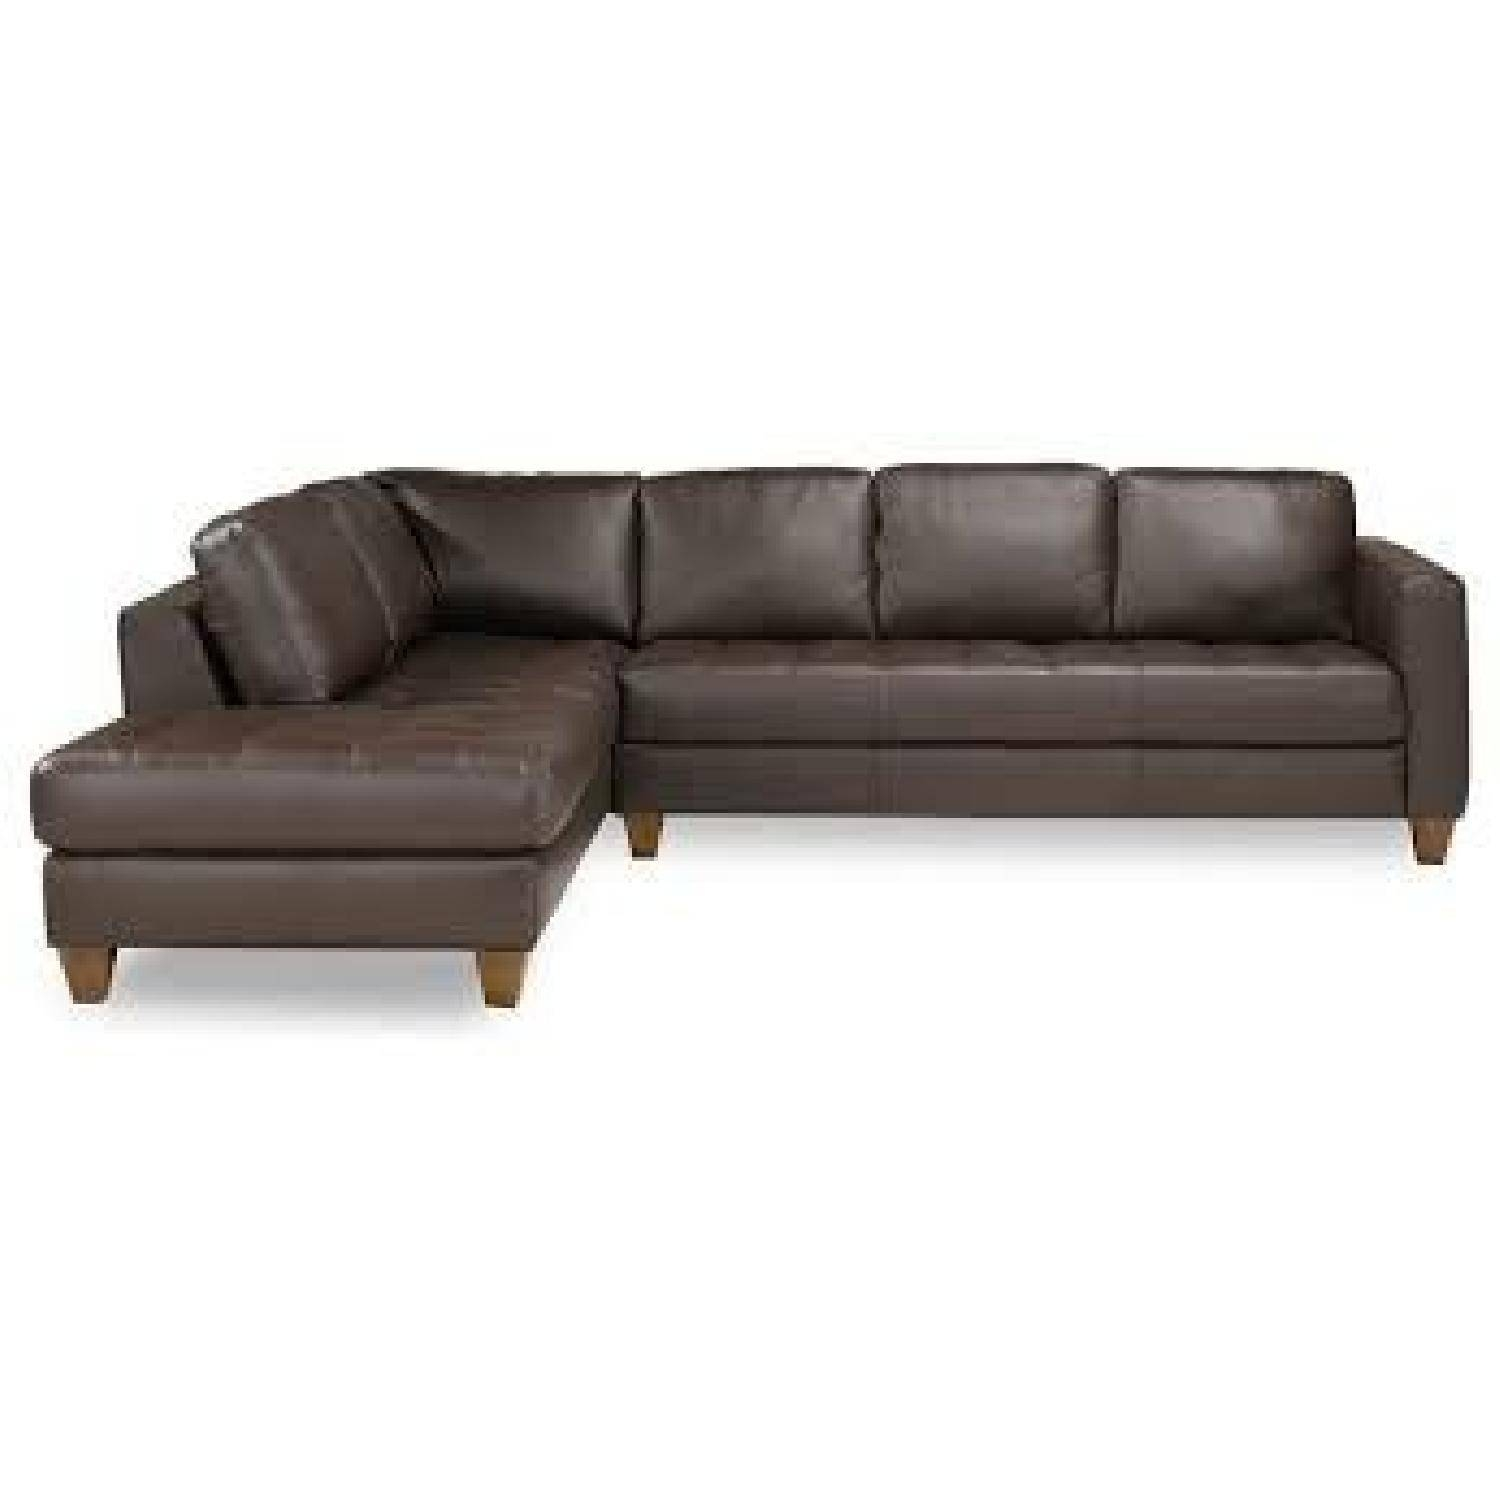 Macy's Milano Brown Leather Sectional Sofa – Aptdeco Regarding Macys Leather Sofas Sectionals (View 6 of 25)